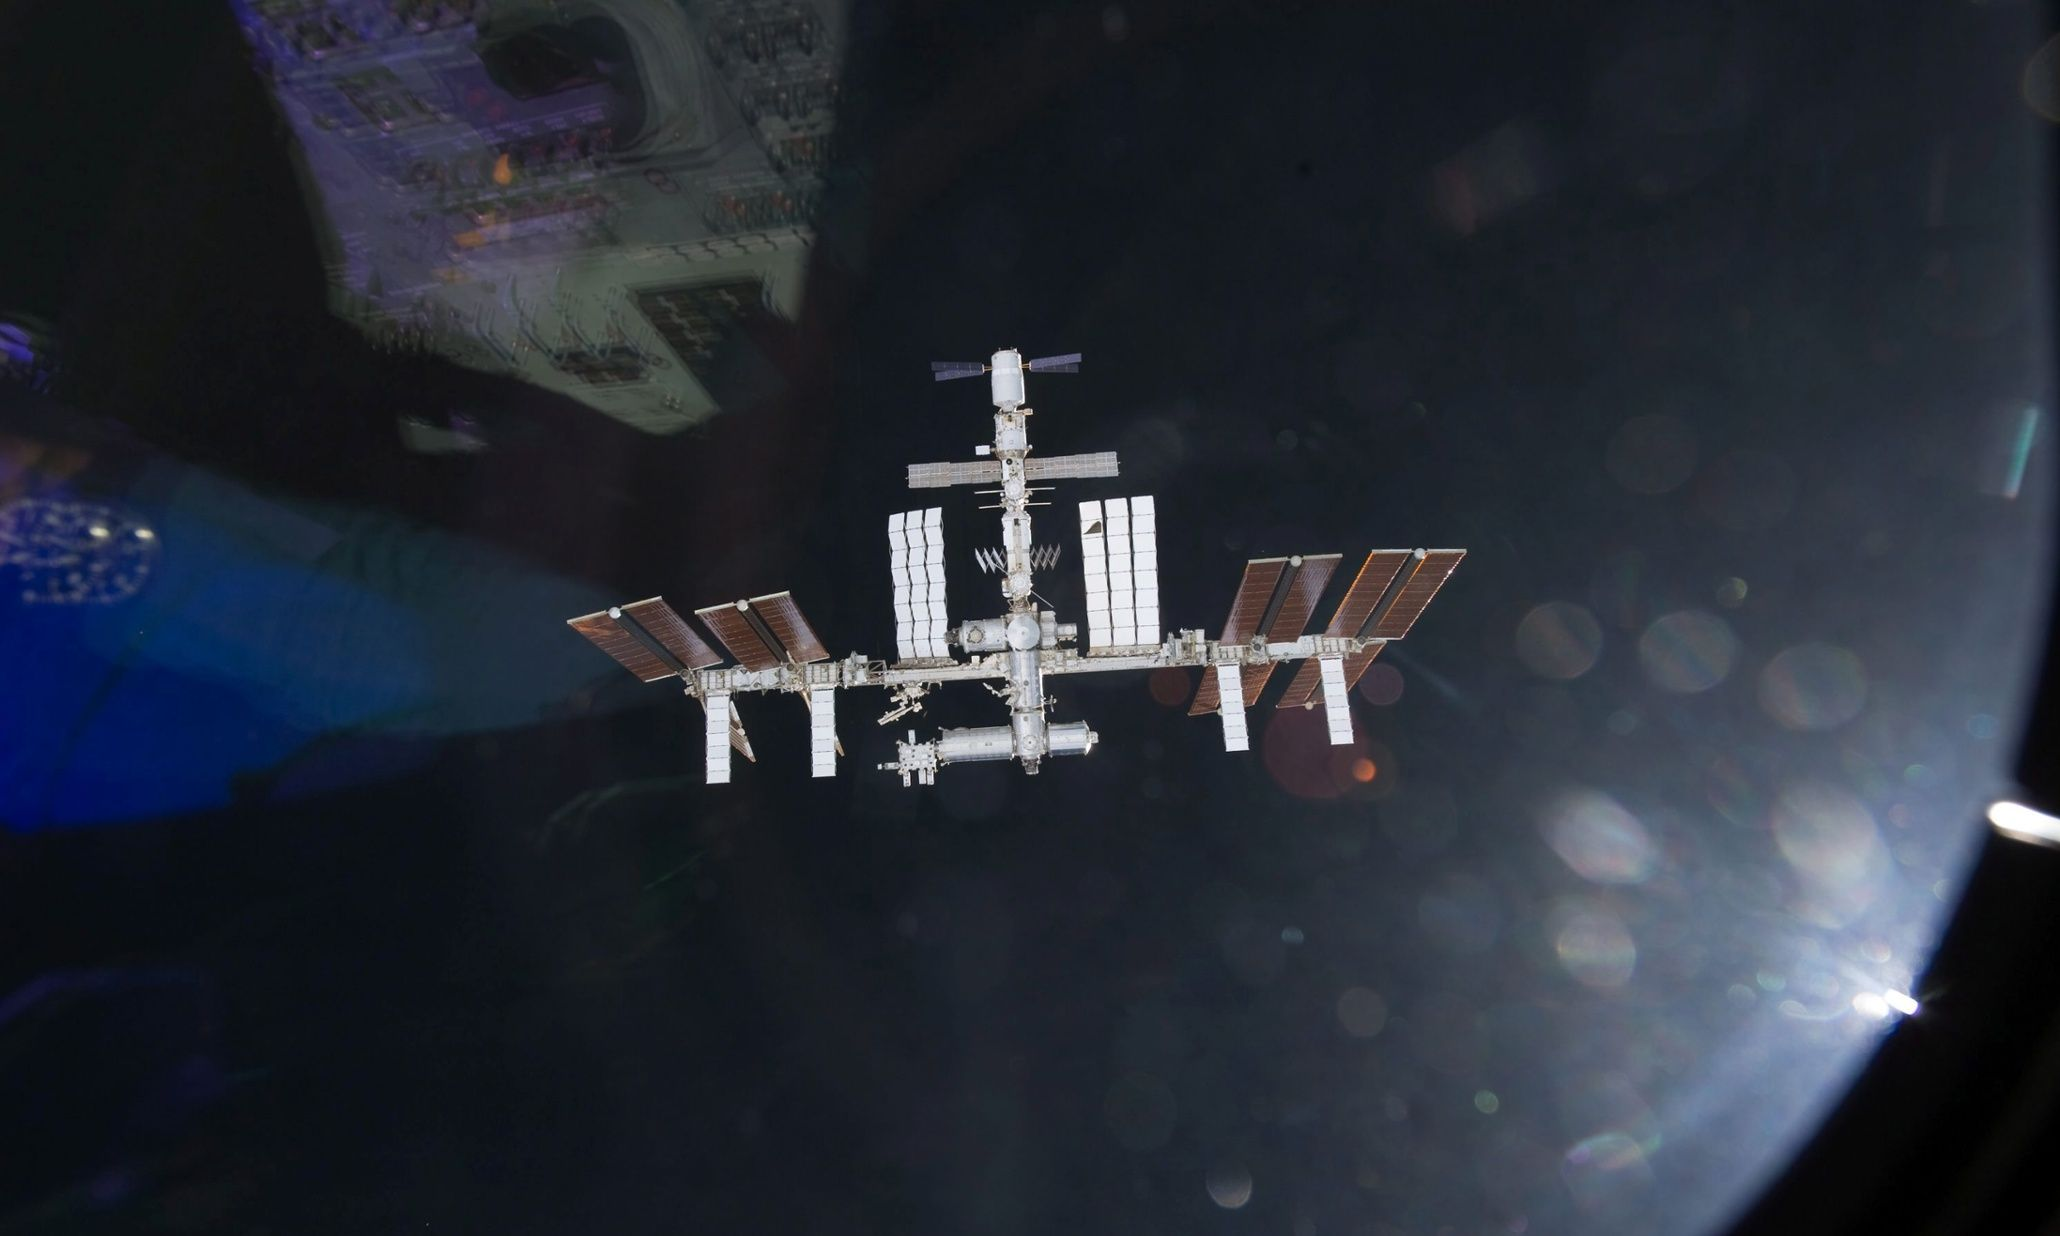 Pin by Lehis on Space Space station, Space junk